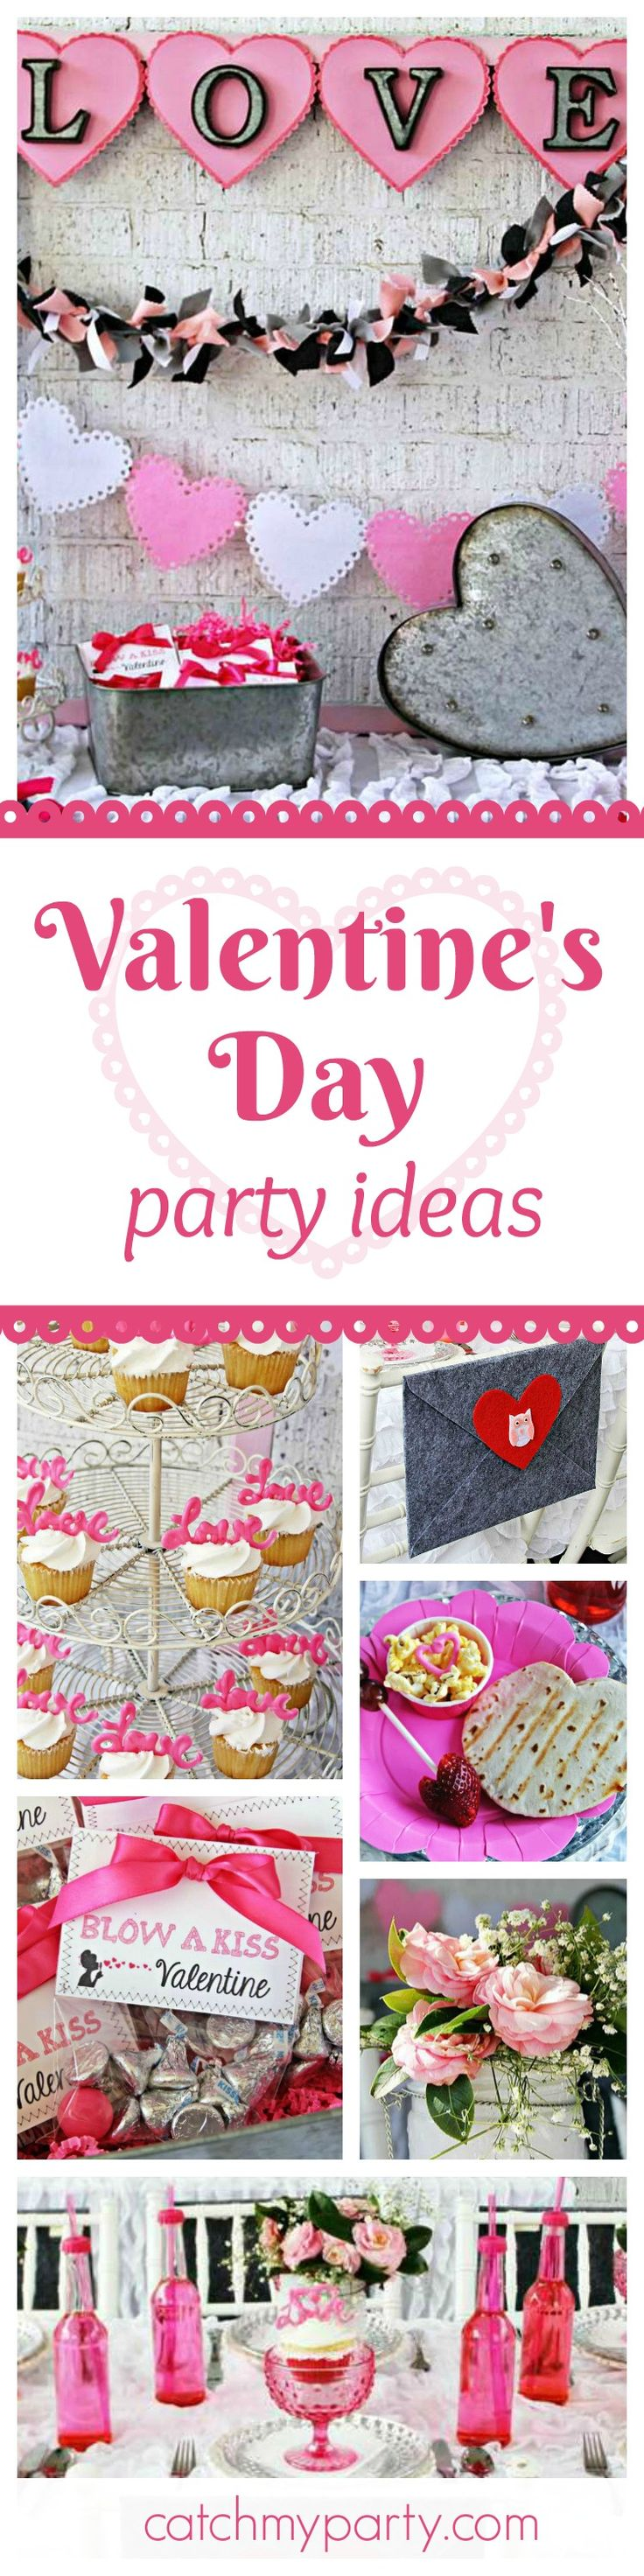 765 best images about valentine 39 s day party ideas on for Valentines day trip ideas